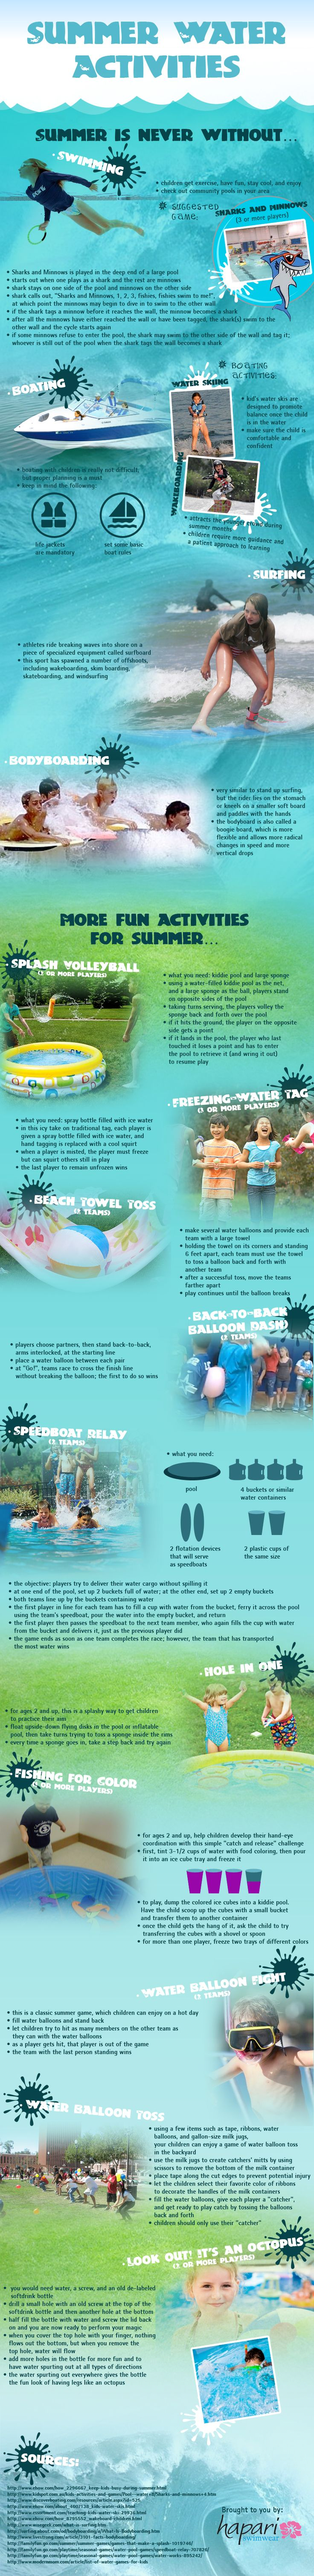 Complete Guide to Summer Water Activities - tons of great ideas here for the summer. infographicCamps Ideas, Fun Activities, Summer Water, Water Fun, Activities Infographic, Summer Activities, Water Activities, Swimming Activities, Summer Fun